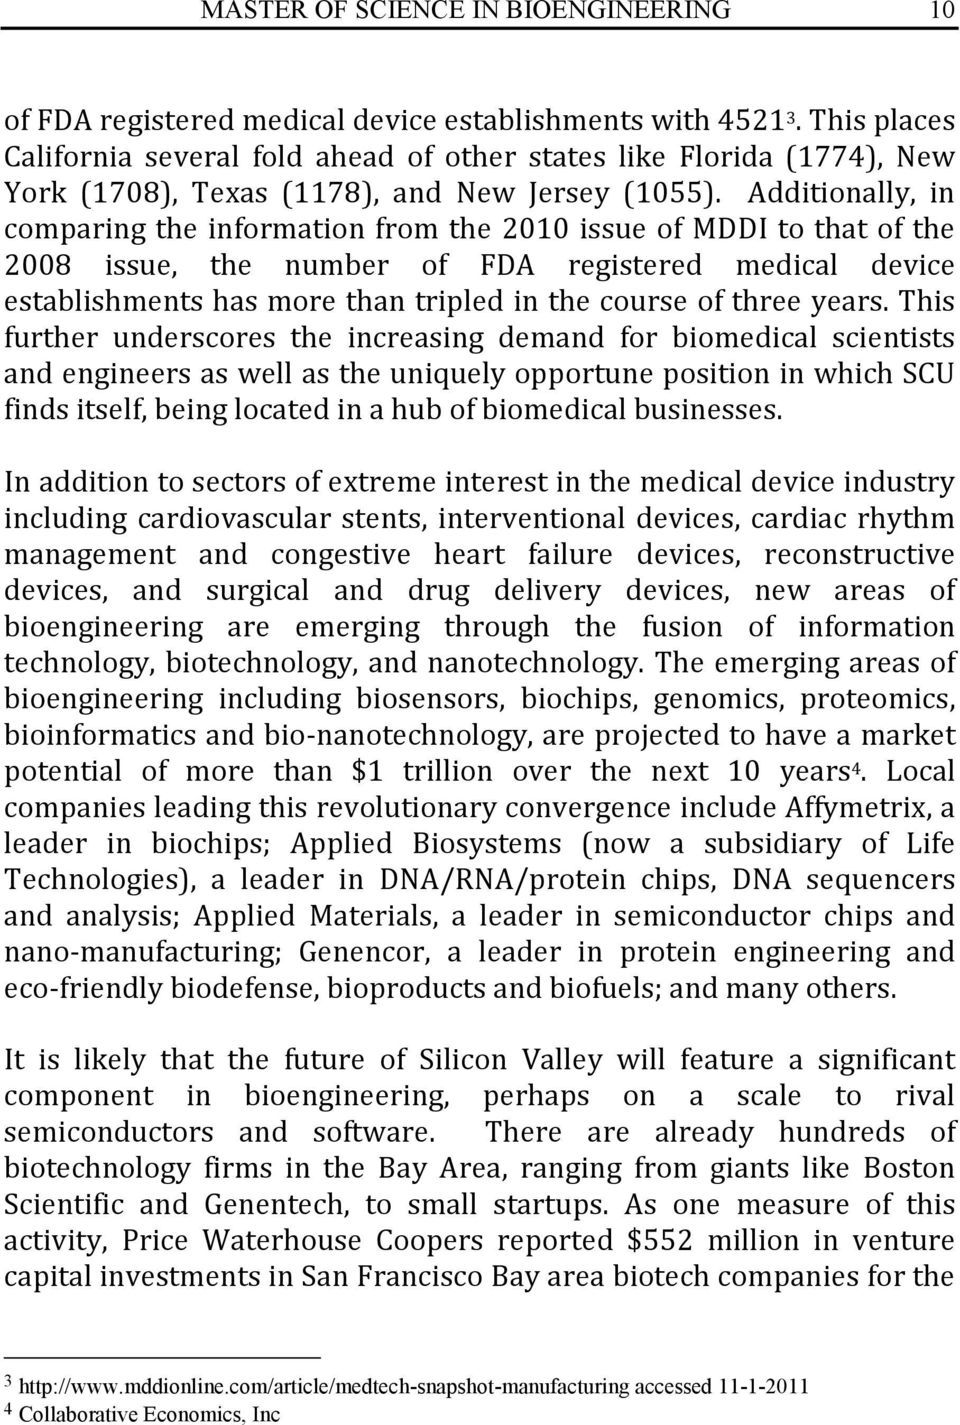 Additionally, in comparing the information from the 2010 issue of MDDI to that of the 2008 issue, the number of FDA registered medical device establishments has more than tripled in the course of